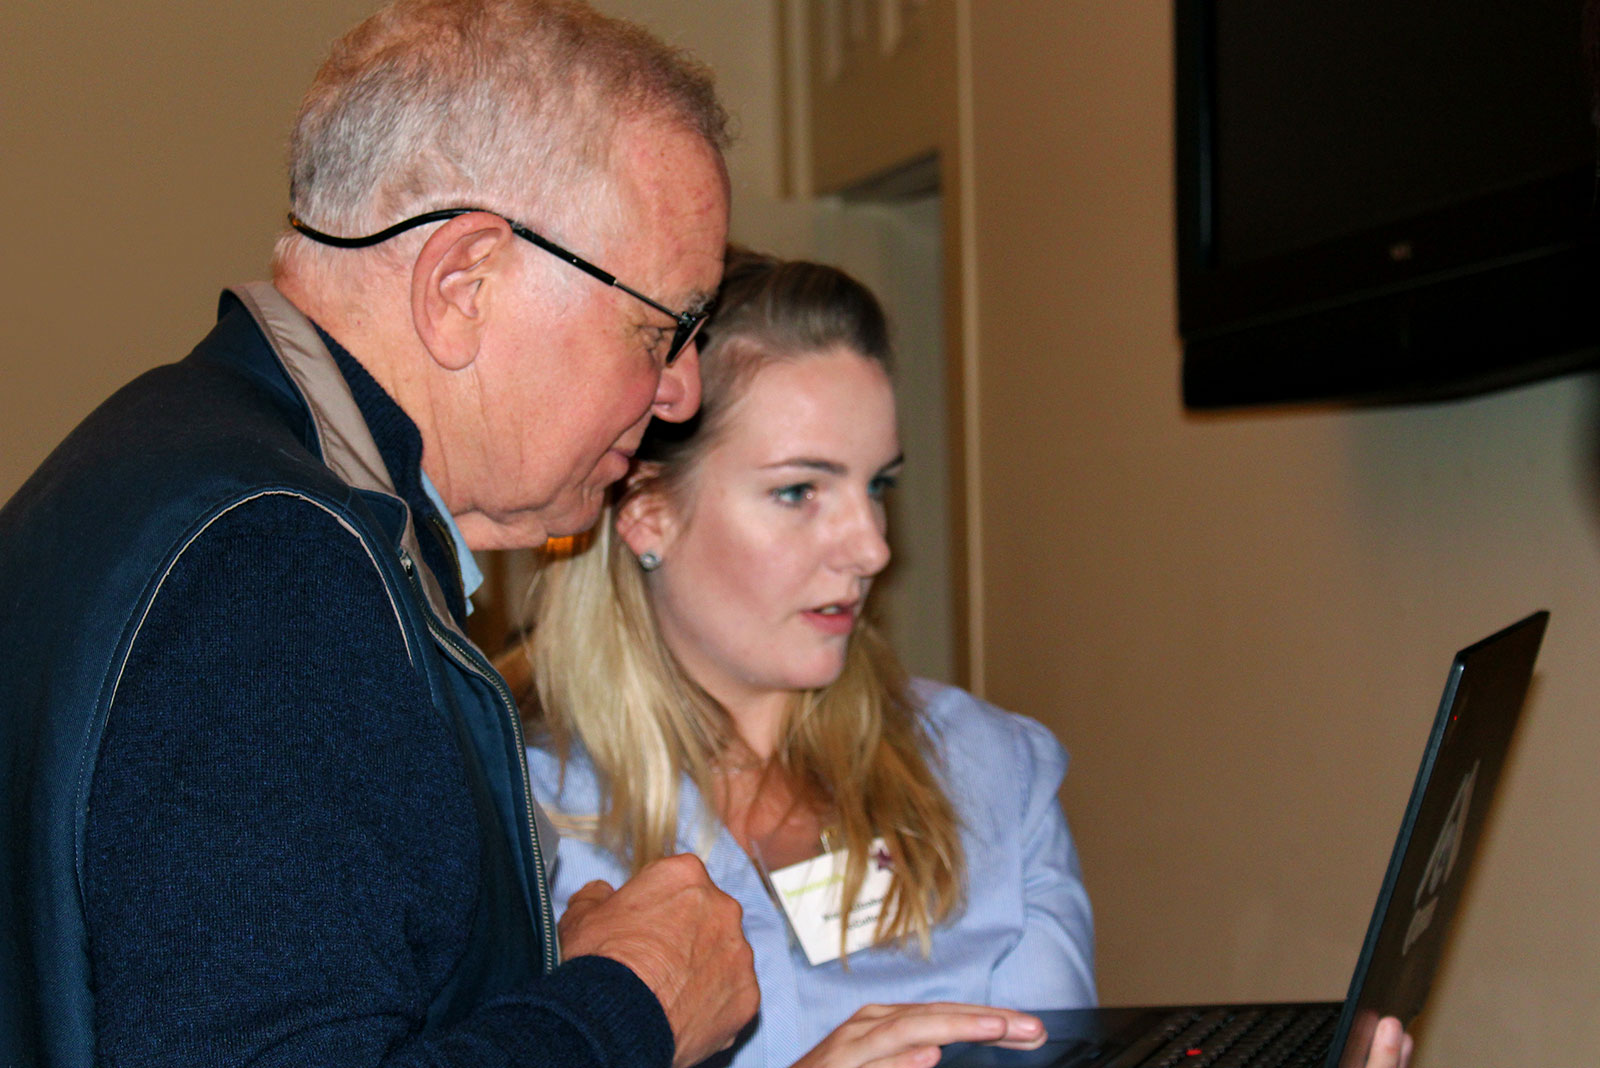 Mary Elizabeth McCulloch of VozBox demonstrates to Ed Arnold her team's accessible technology app for individuals with communication disabilities during the Oct. 17, 2017, Innovation Café at the Cocoa Beanery. The two are pictured standing side-by-side and looking at a laptop computer.